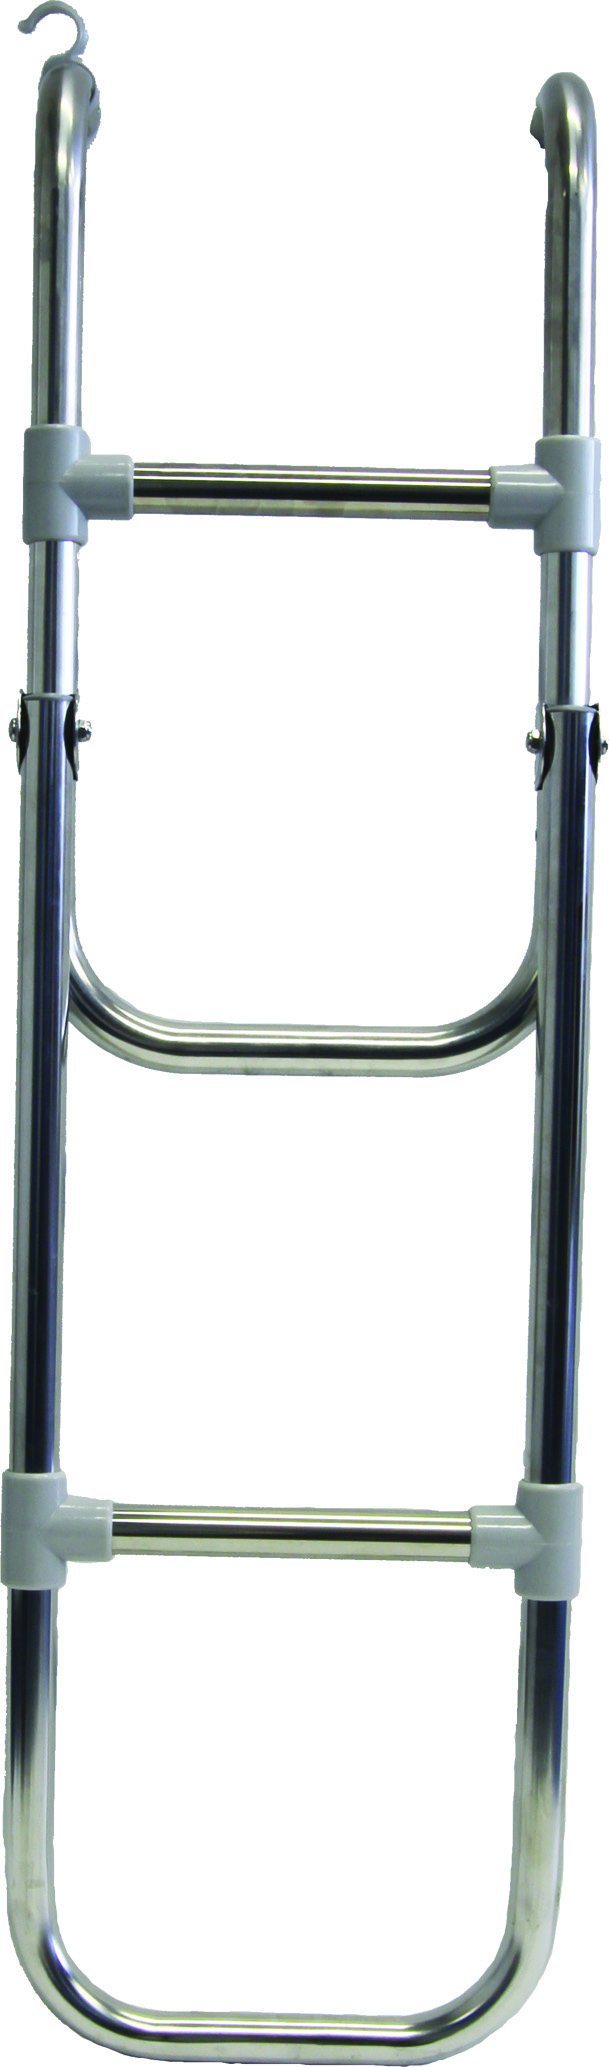 Talamex Steel Boarding Ladder 3+2 Steps